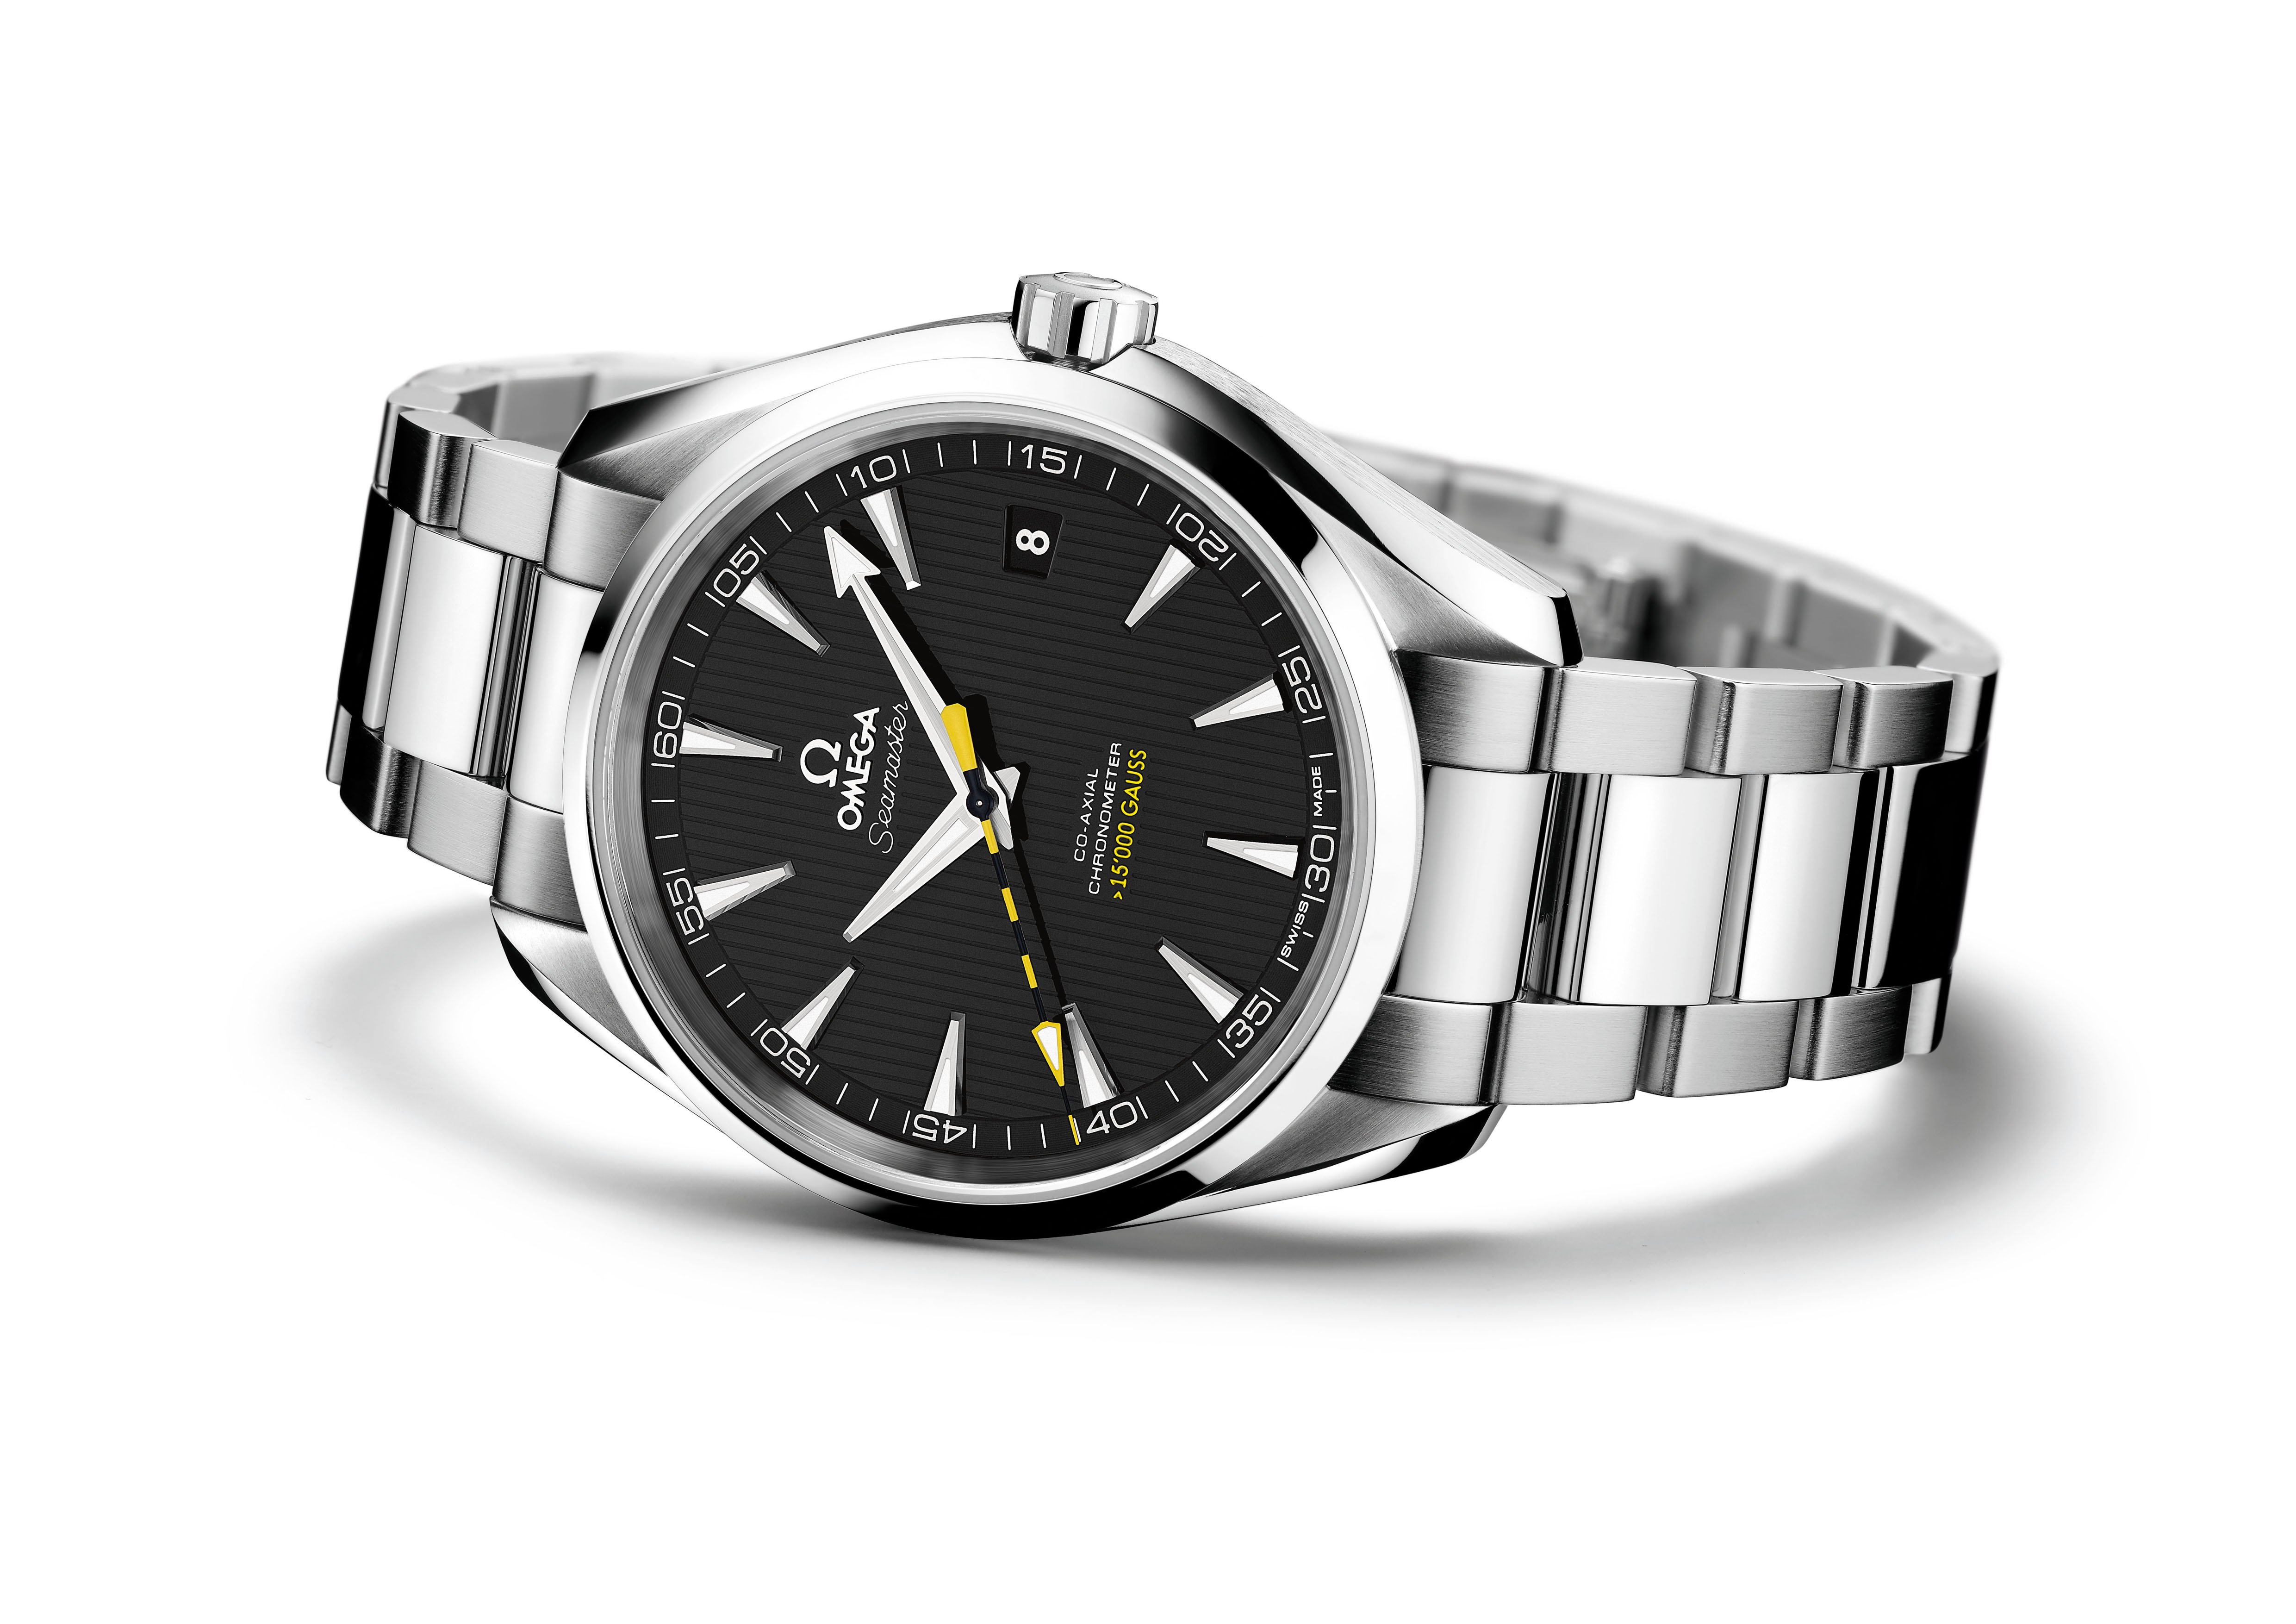 2015 New Omega Replica Watches For Sale